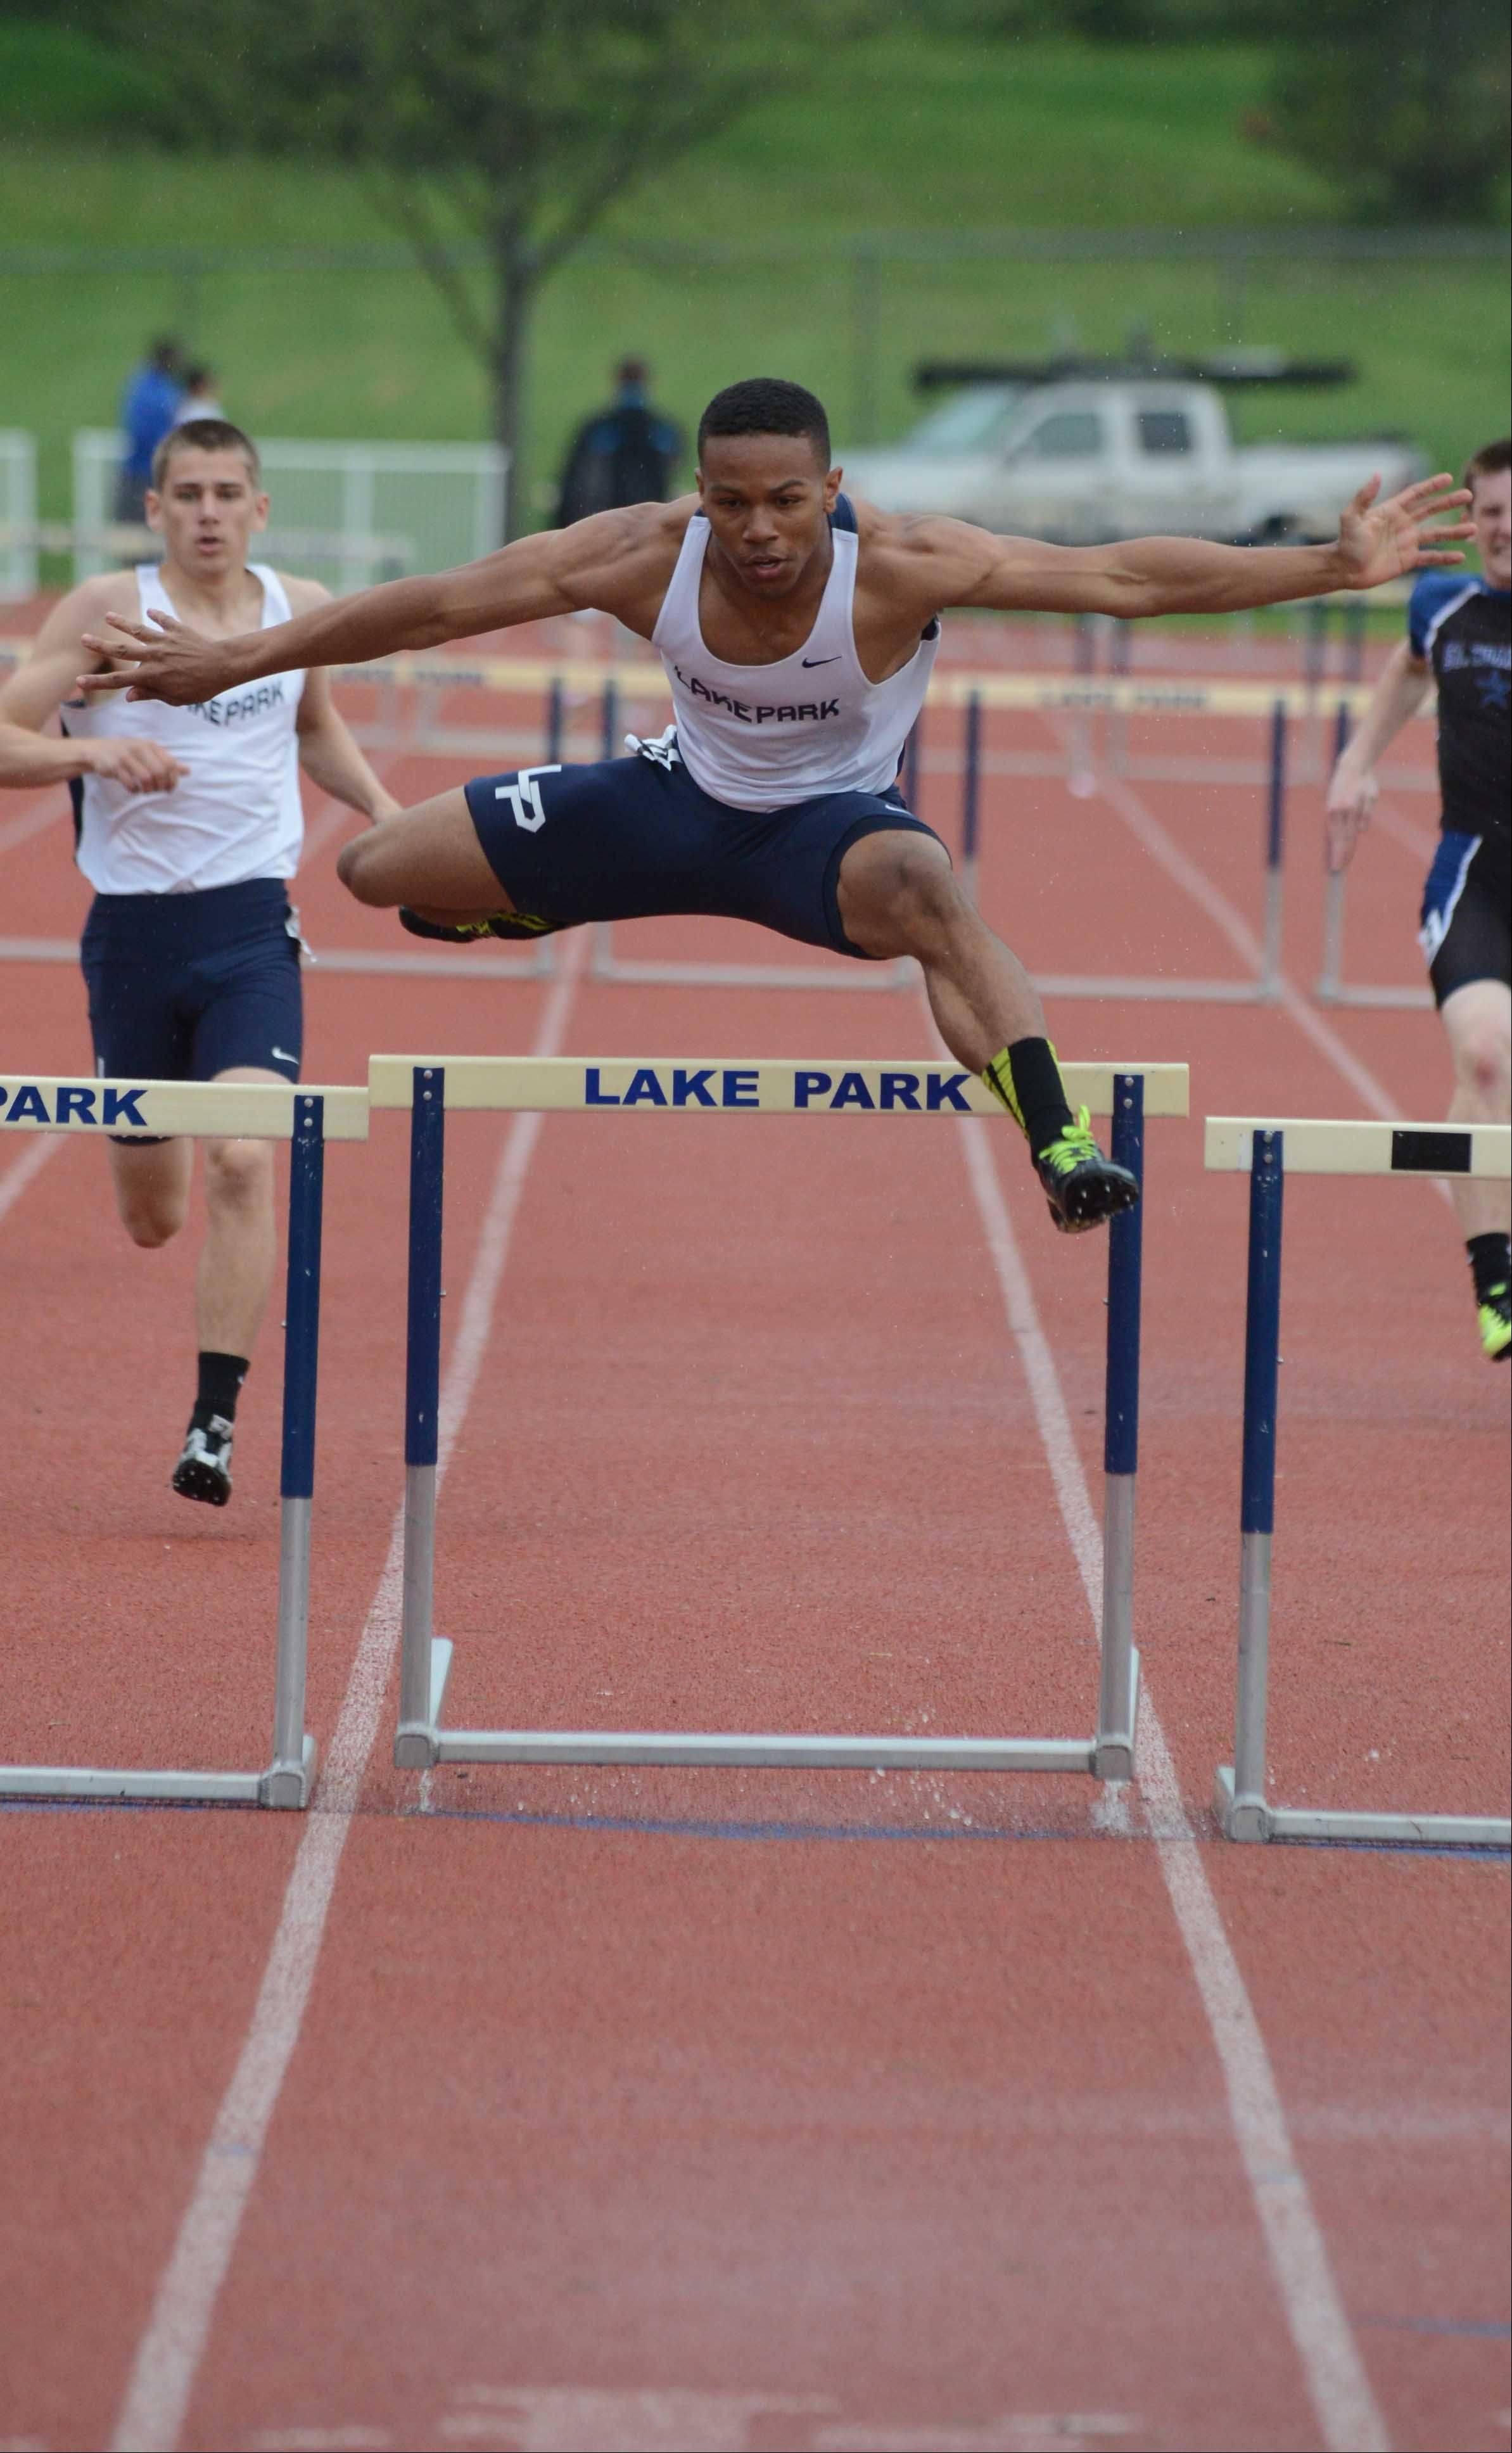 Antonio Shenault of Lake Park takes part in the 300 meter hurdles during the Upstate Eight Conference boys track finals Thursday.The event was held at Lake Park East Campus.